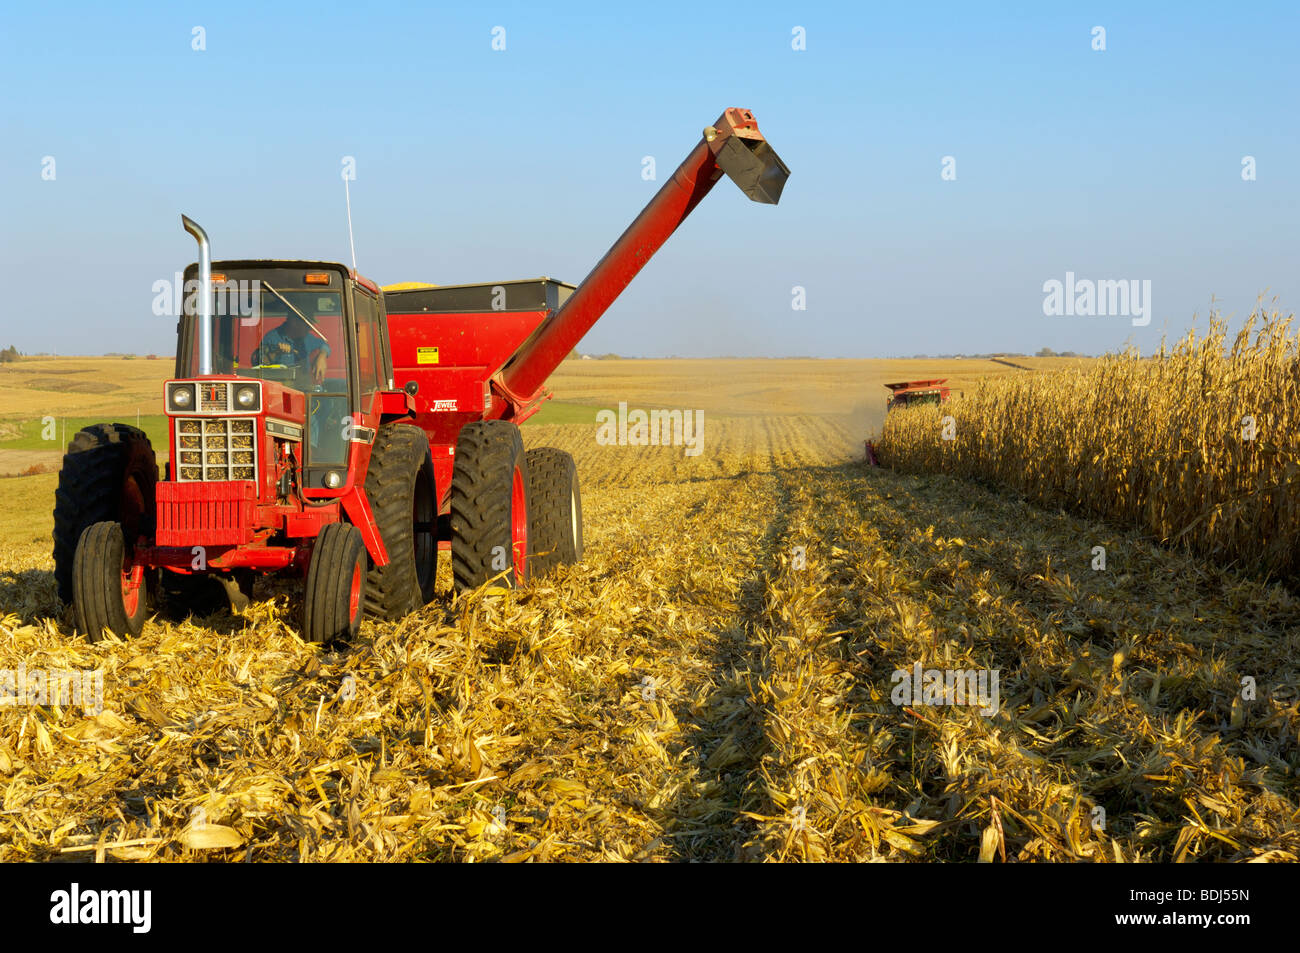 Agriculture - A tractor with a full grain cart pulls away from a